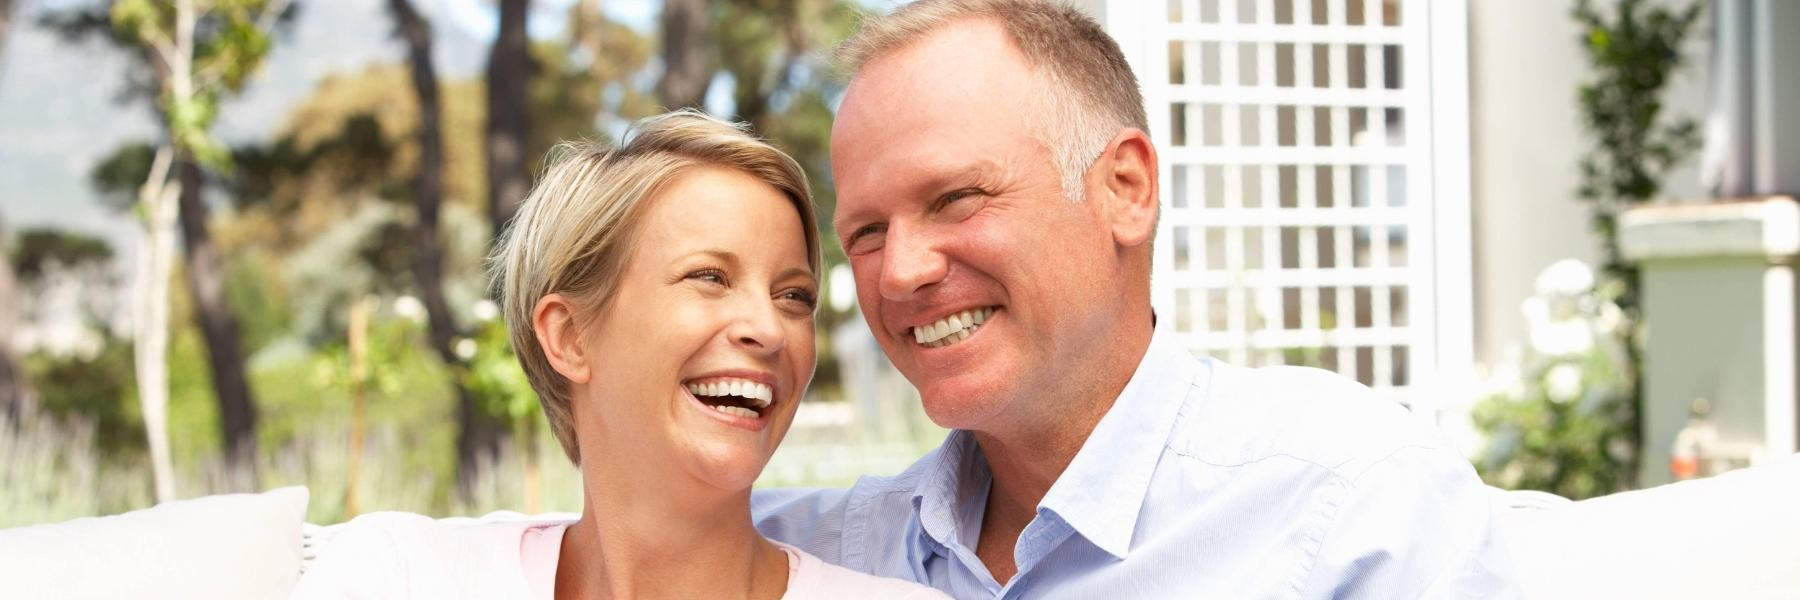 Couple | Dental Implants in Avondale